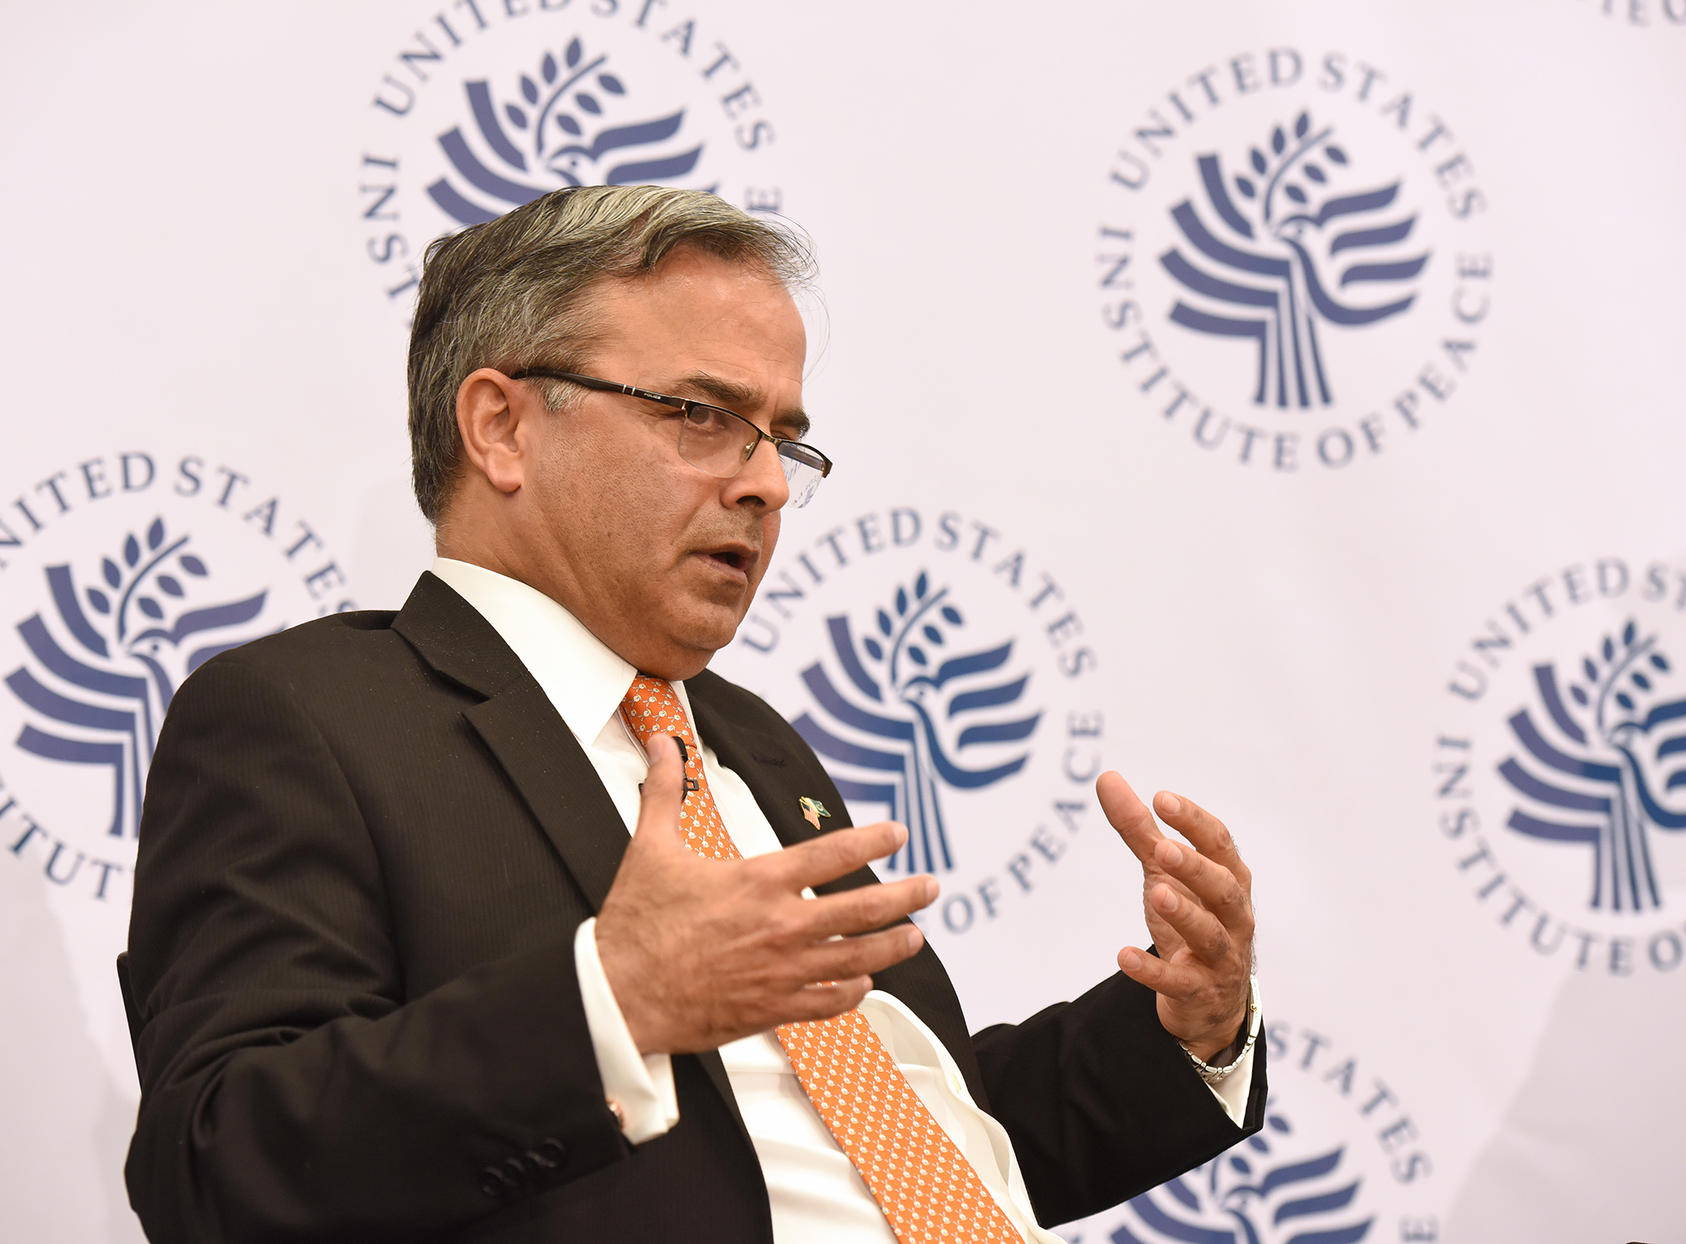 Pakistani Ambassador to U.S. Dr. Asad Majeed Khan discusses Pakistan's foreign policy priorities at the U.S. Institute of Peace, March 4, 2019.